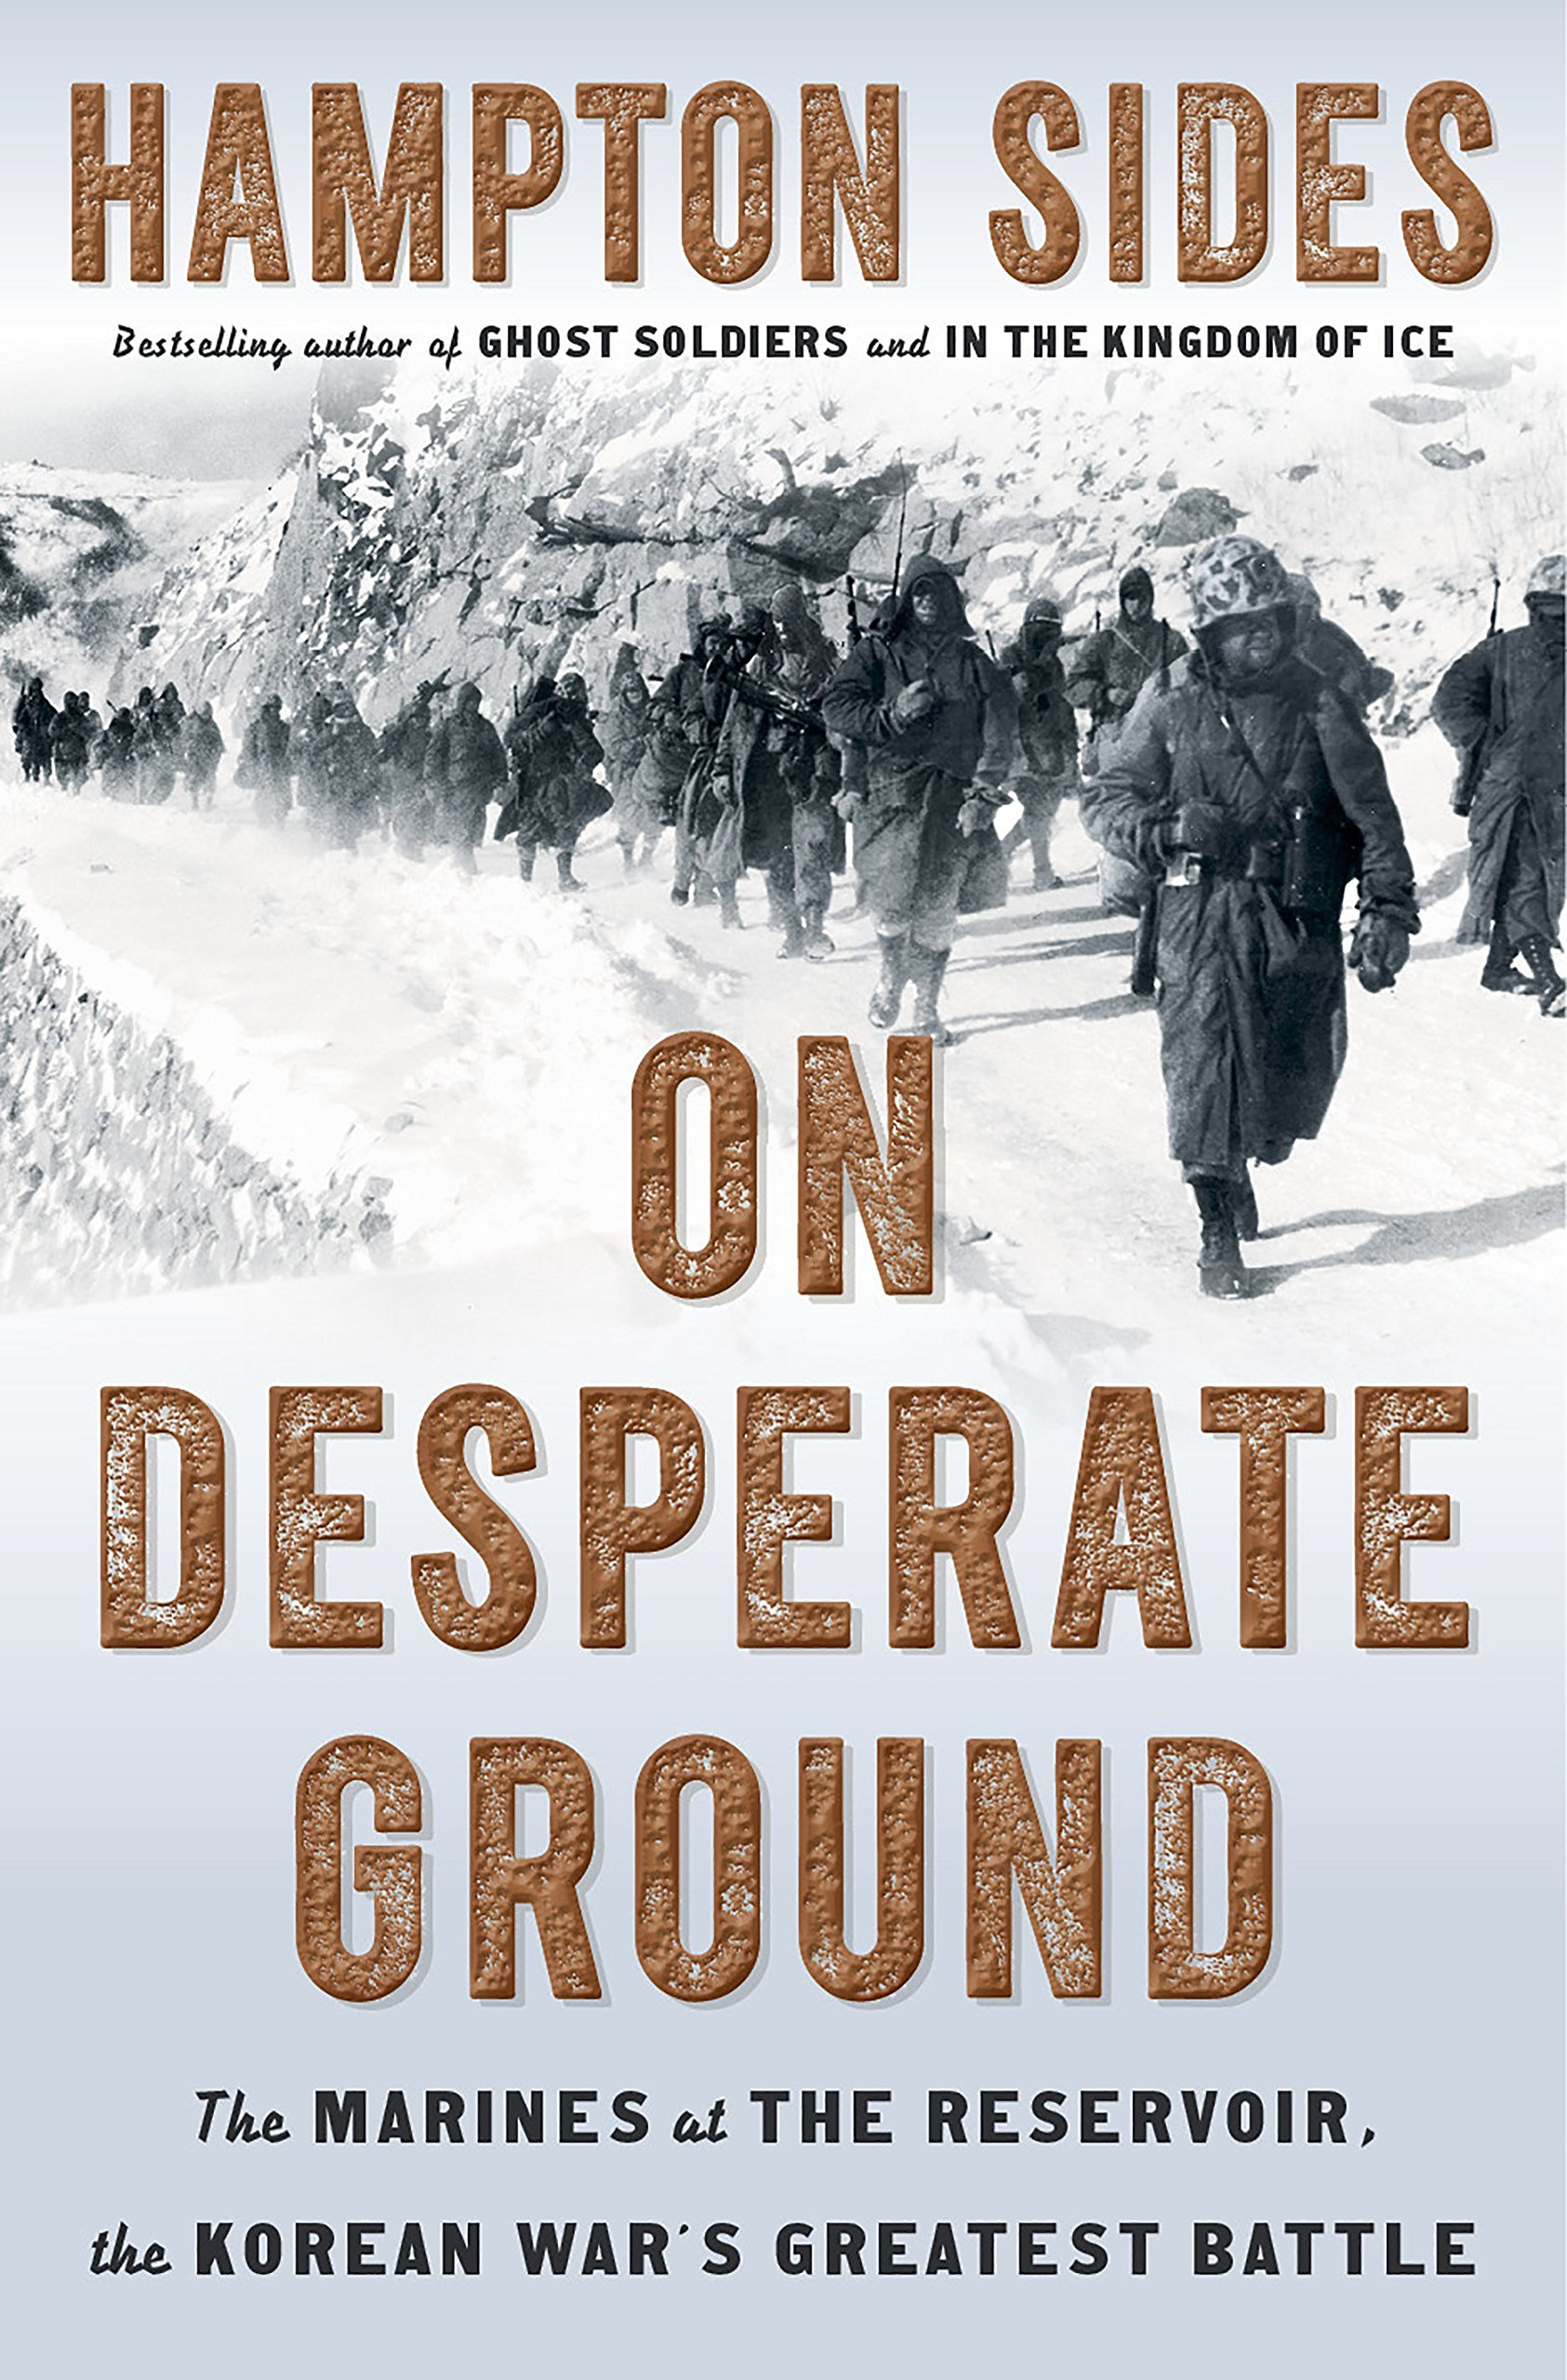 Soldiers in a line presenting Hampton Sides book on desperate ground.